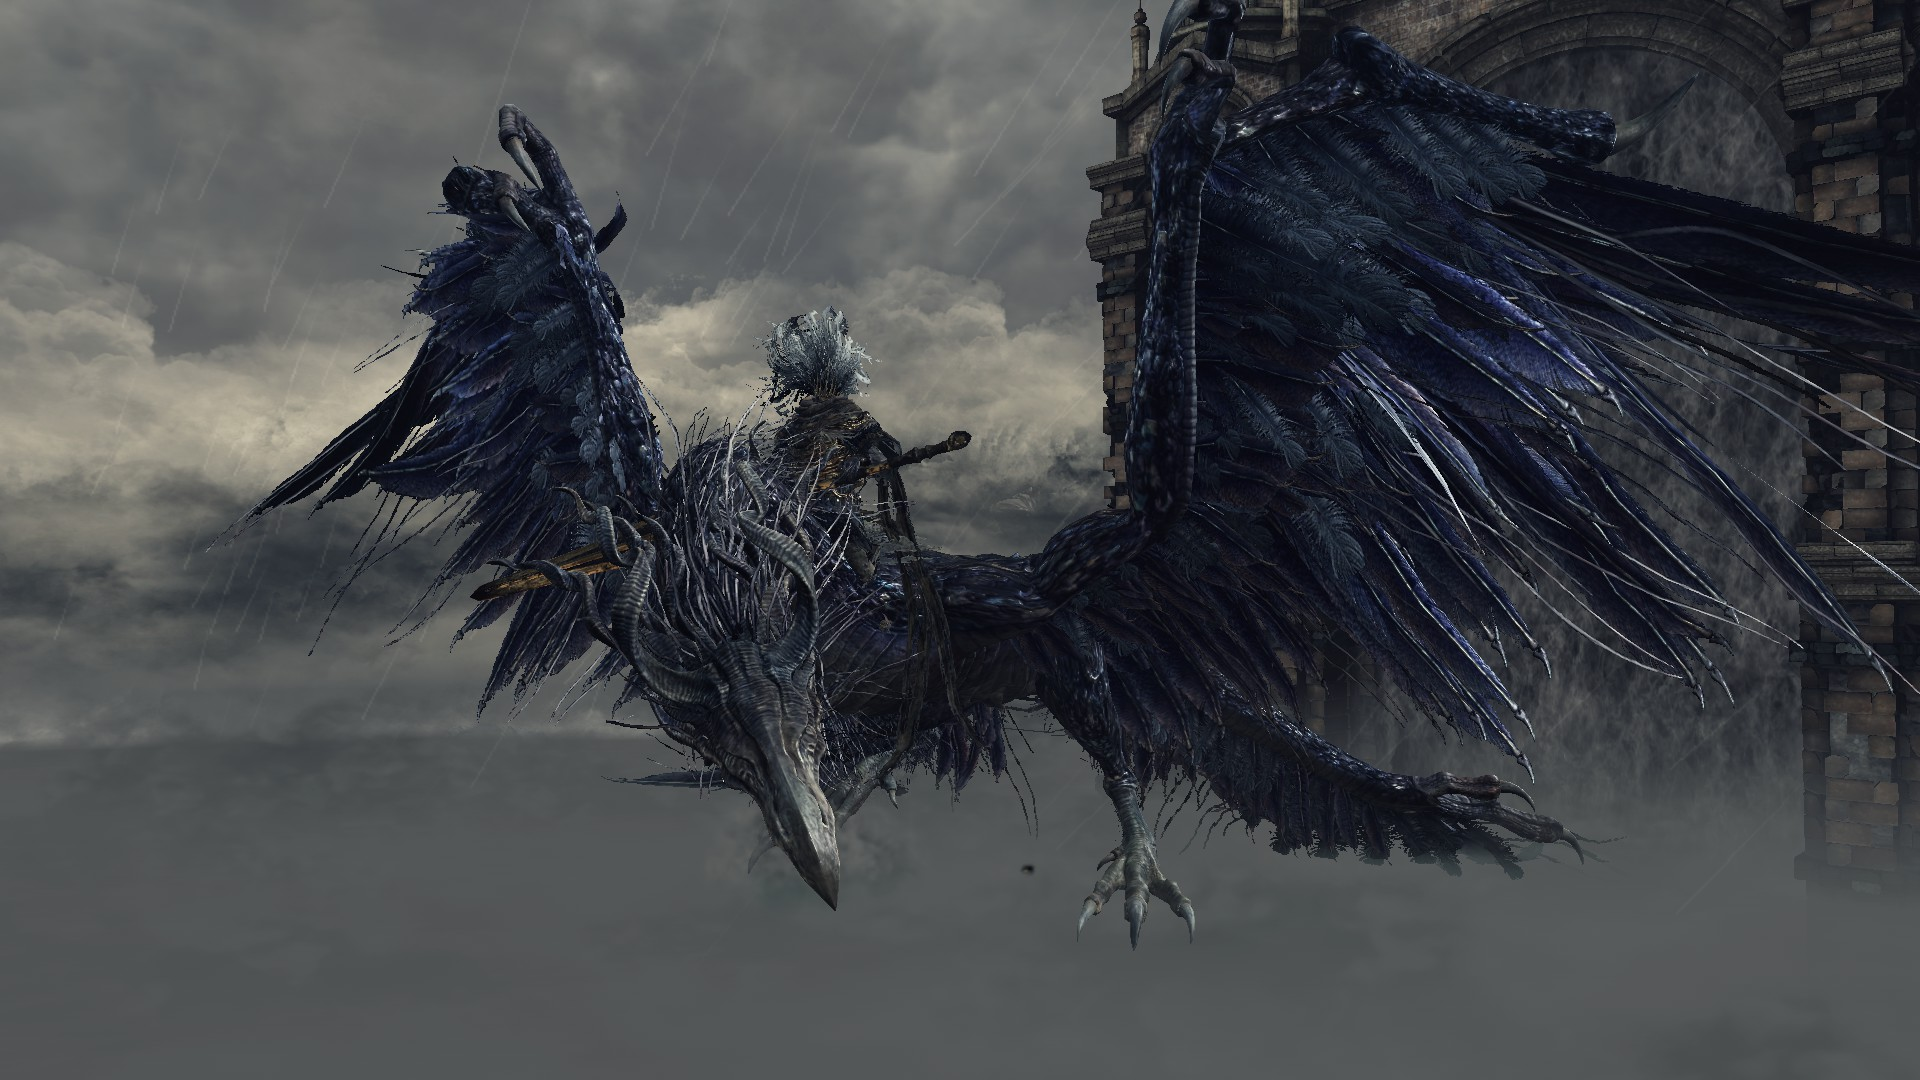 The Nameless King Image